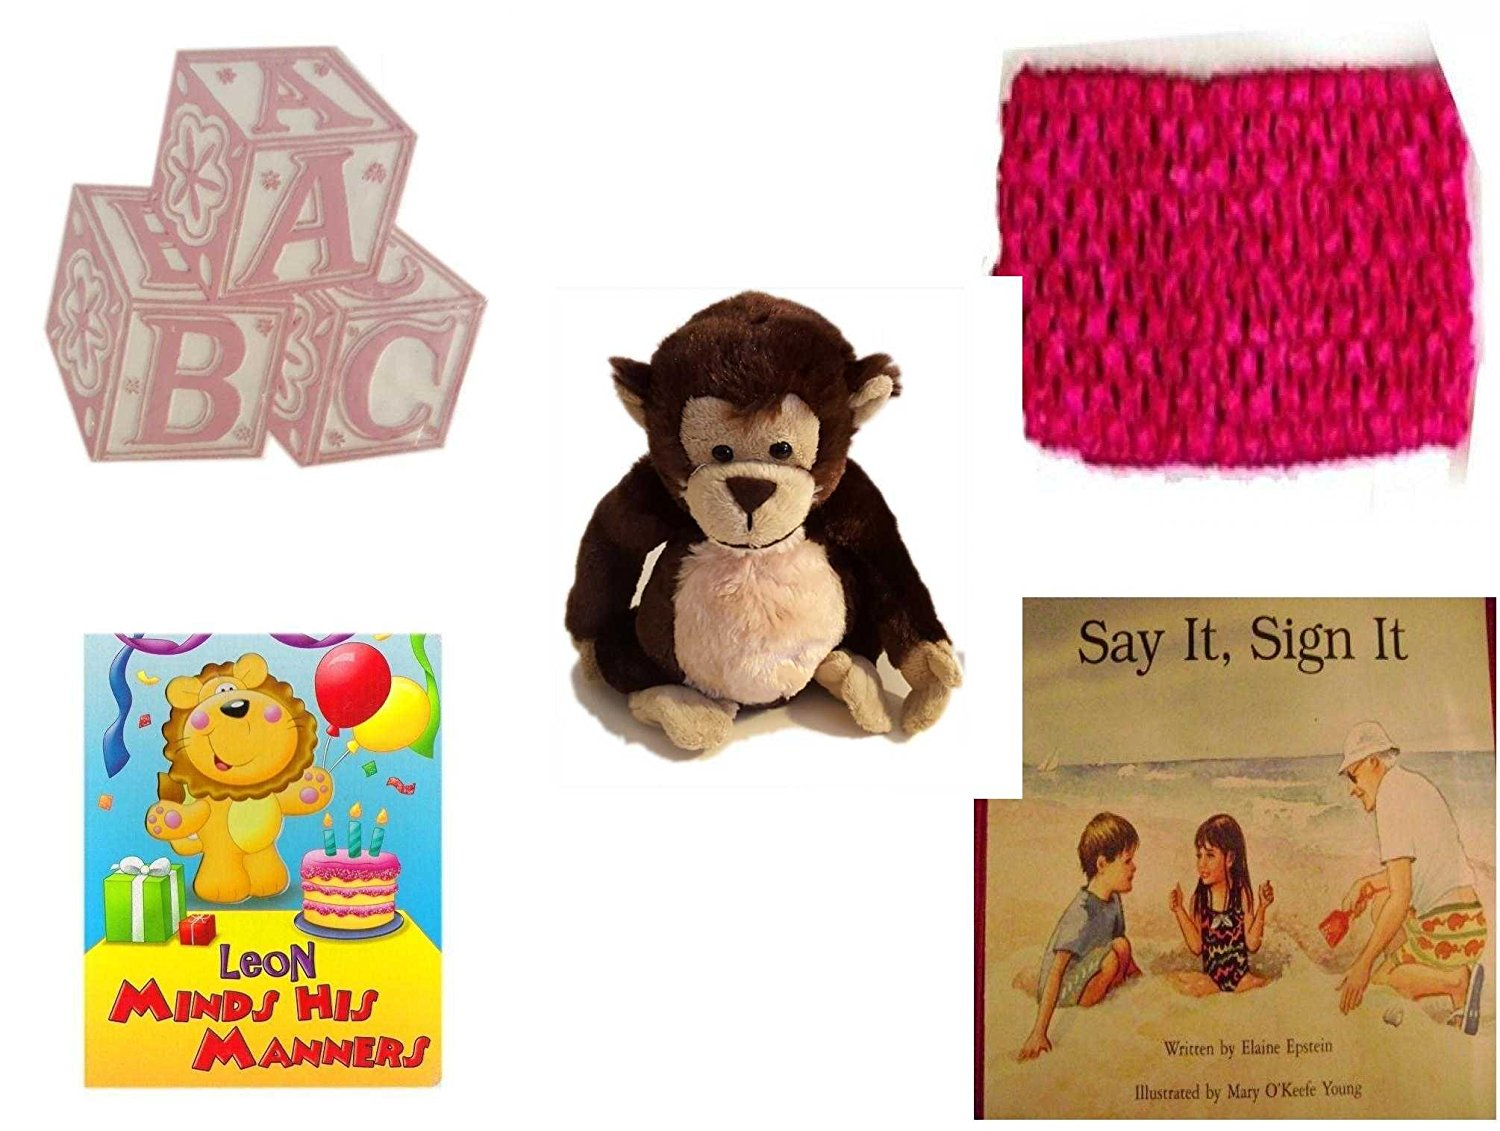 Children's Gift Bundle - Ages 0-2 [5 Piece] - ABC Baby Blocks Cake Topper Pink Girl - Baby Crochet Headband Fuchsia - Ganz Adorable Chimpanzee Plush - Leon Minds His Manners Board Book - Say It, Sig